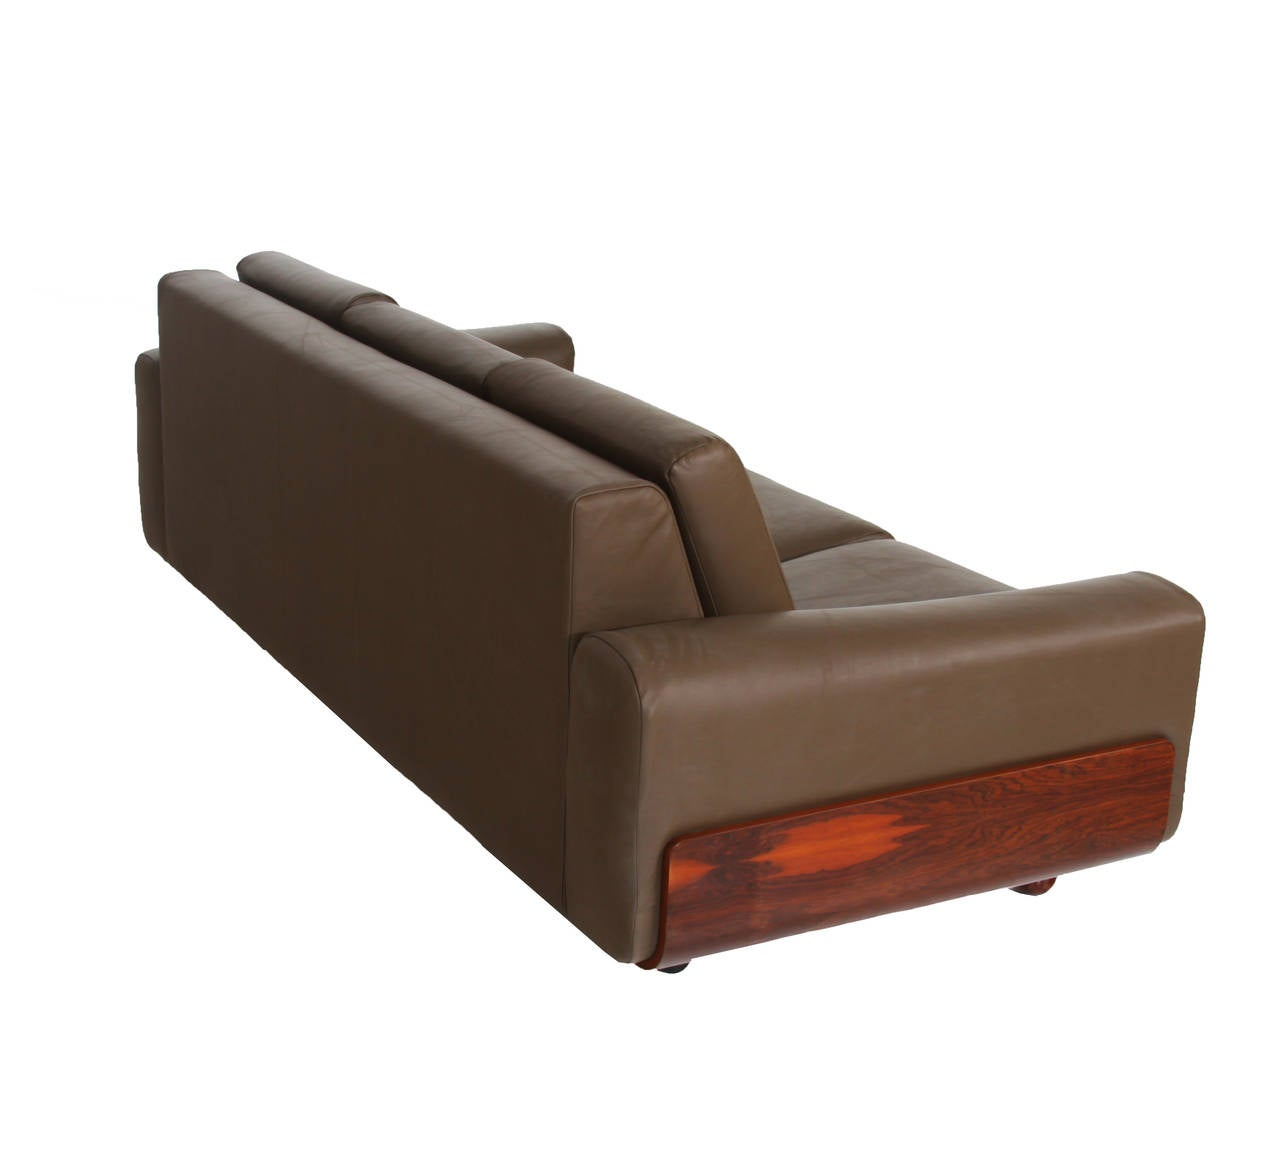 Tendo Brasileira Rosewood and Leather Sofa 3